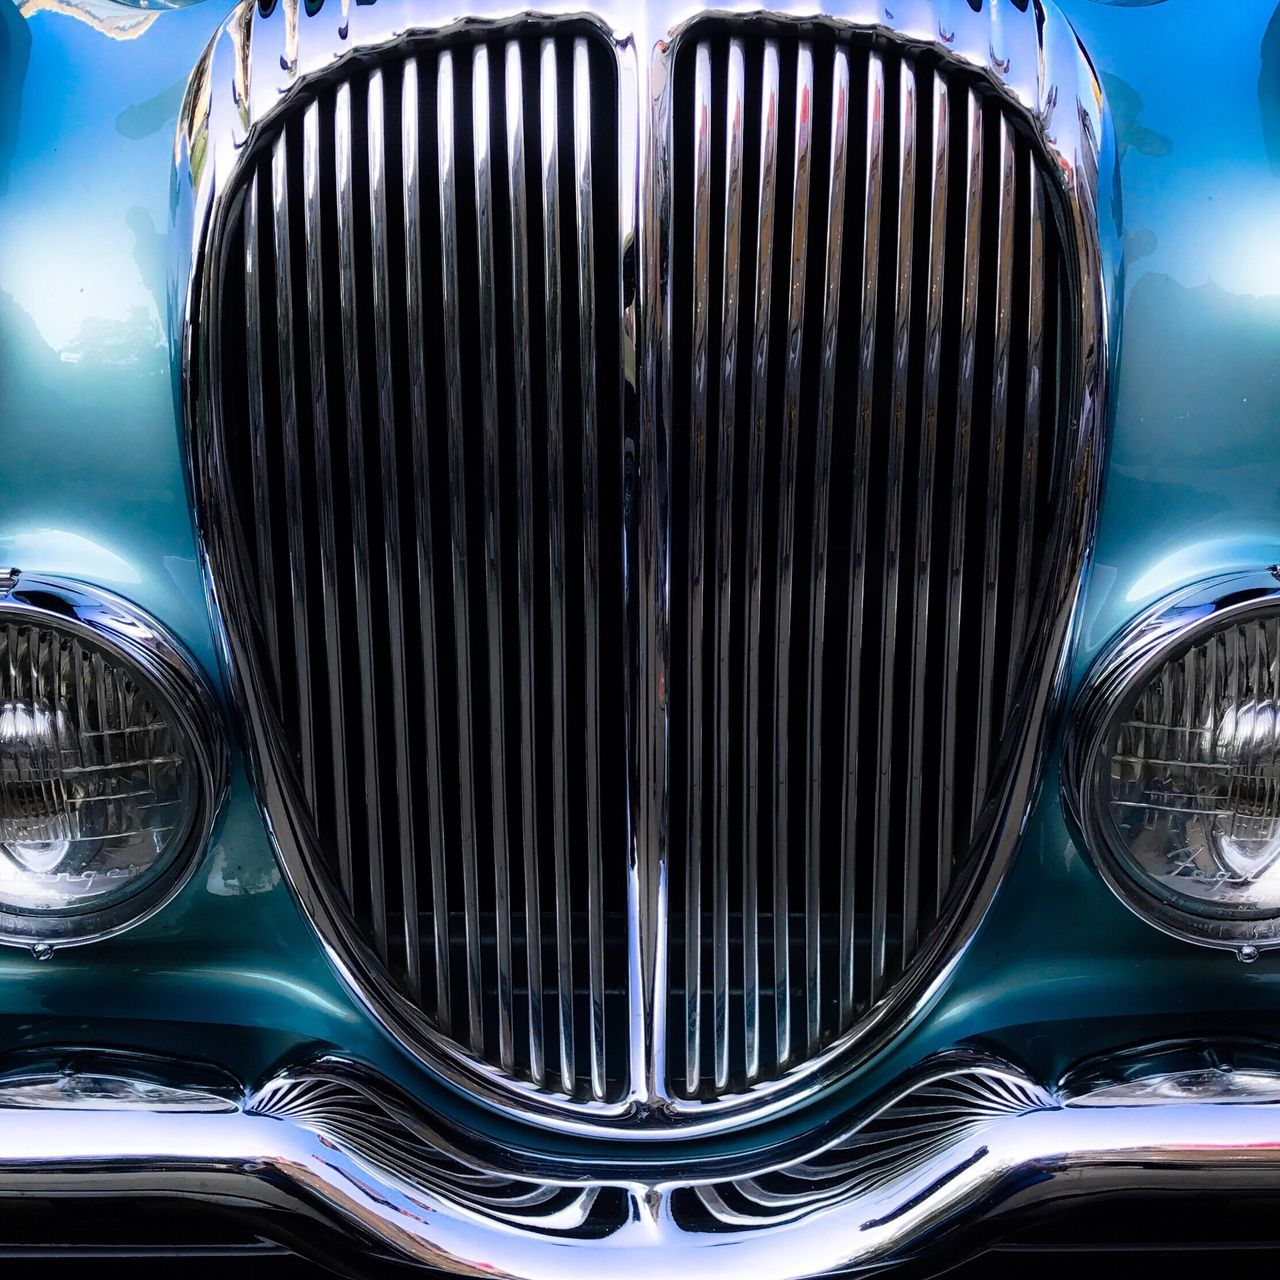 headlight, car, mode of transport, land vehicle, transportation, close-up, luxury, no people, outdoors, day